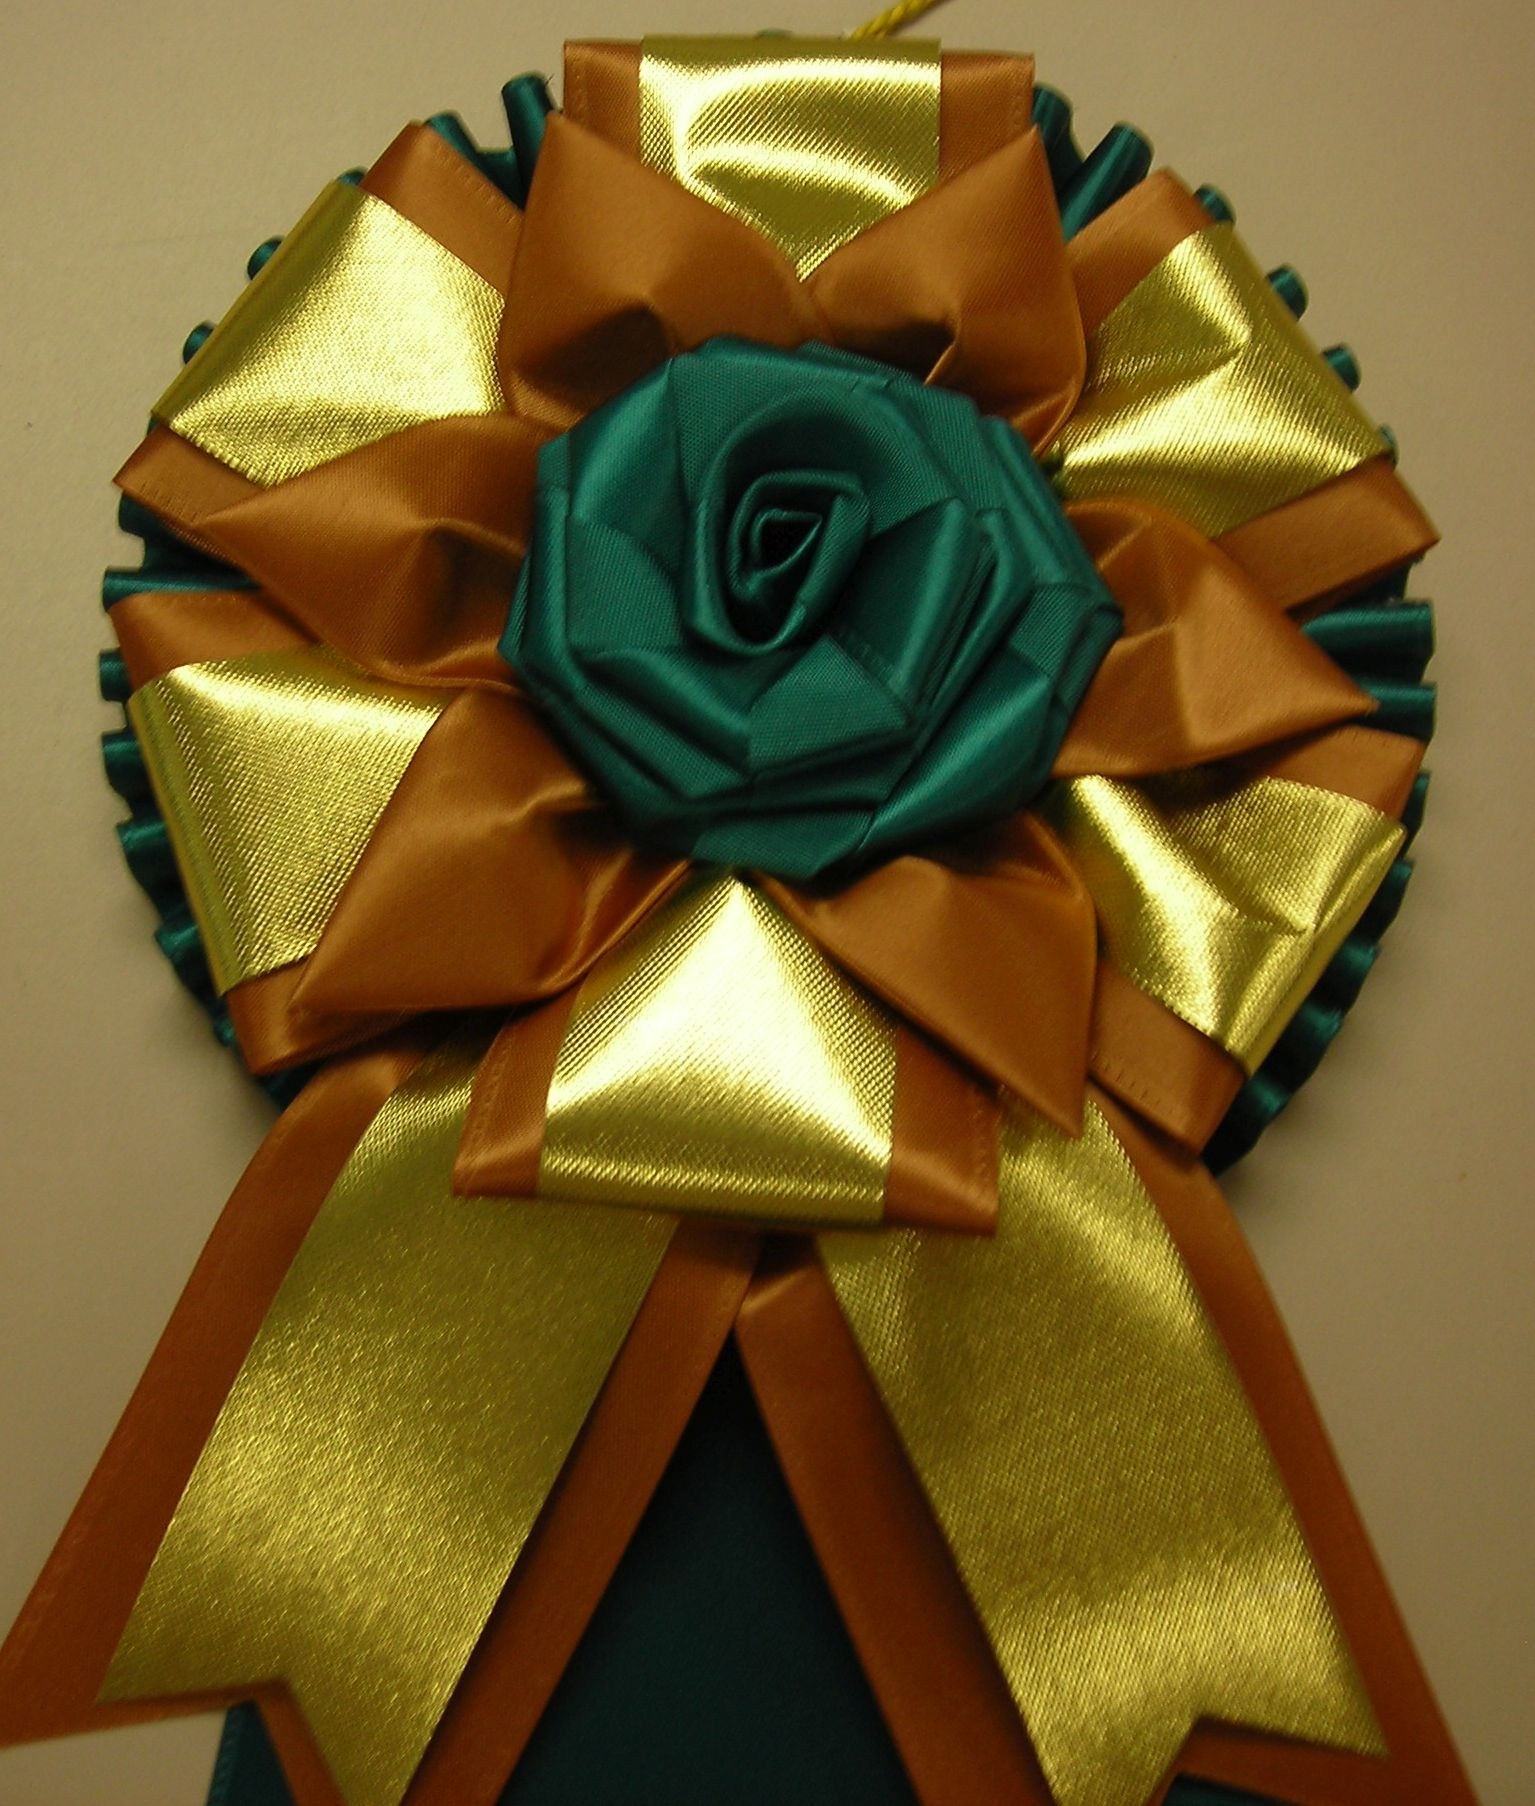 PP4CP with rose button & gold accent